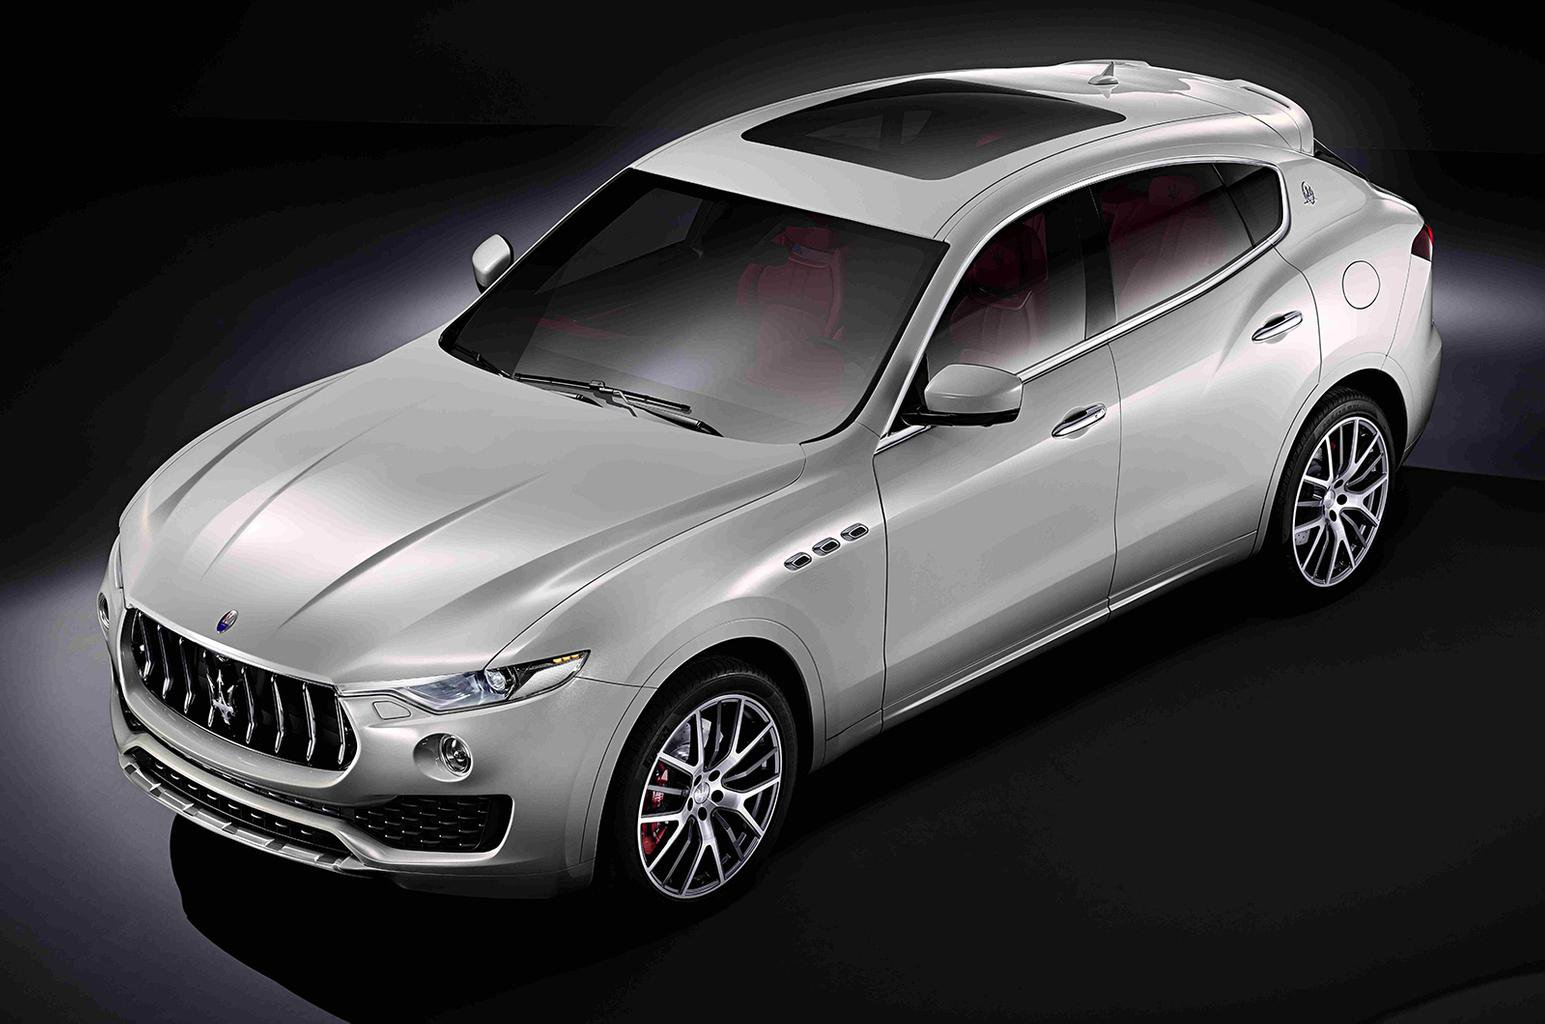 2016 Maserati Levante - engines, specification and pics